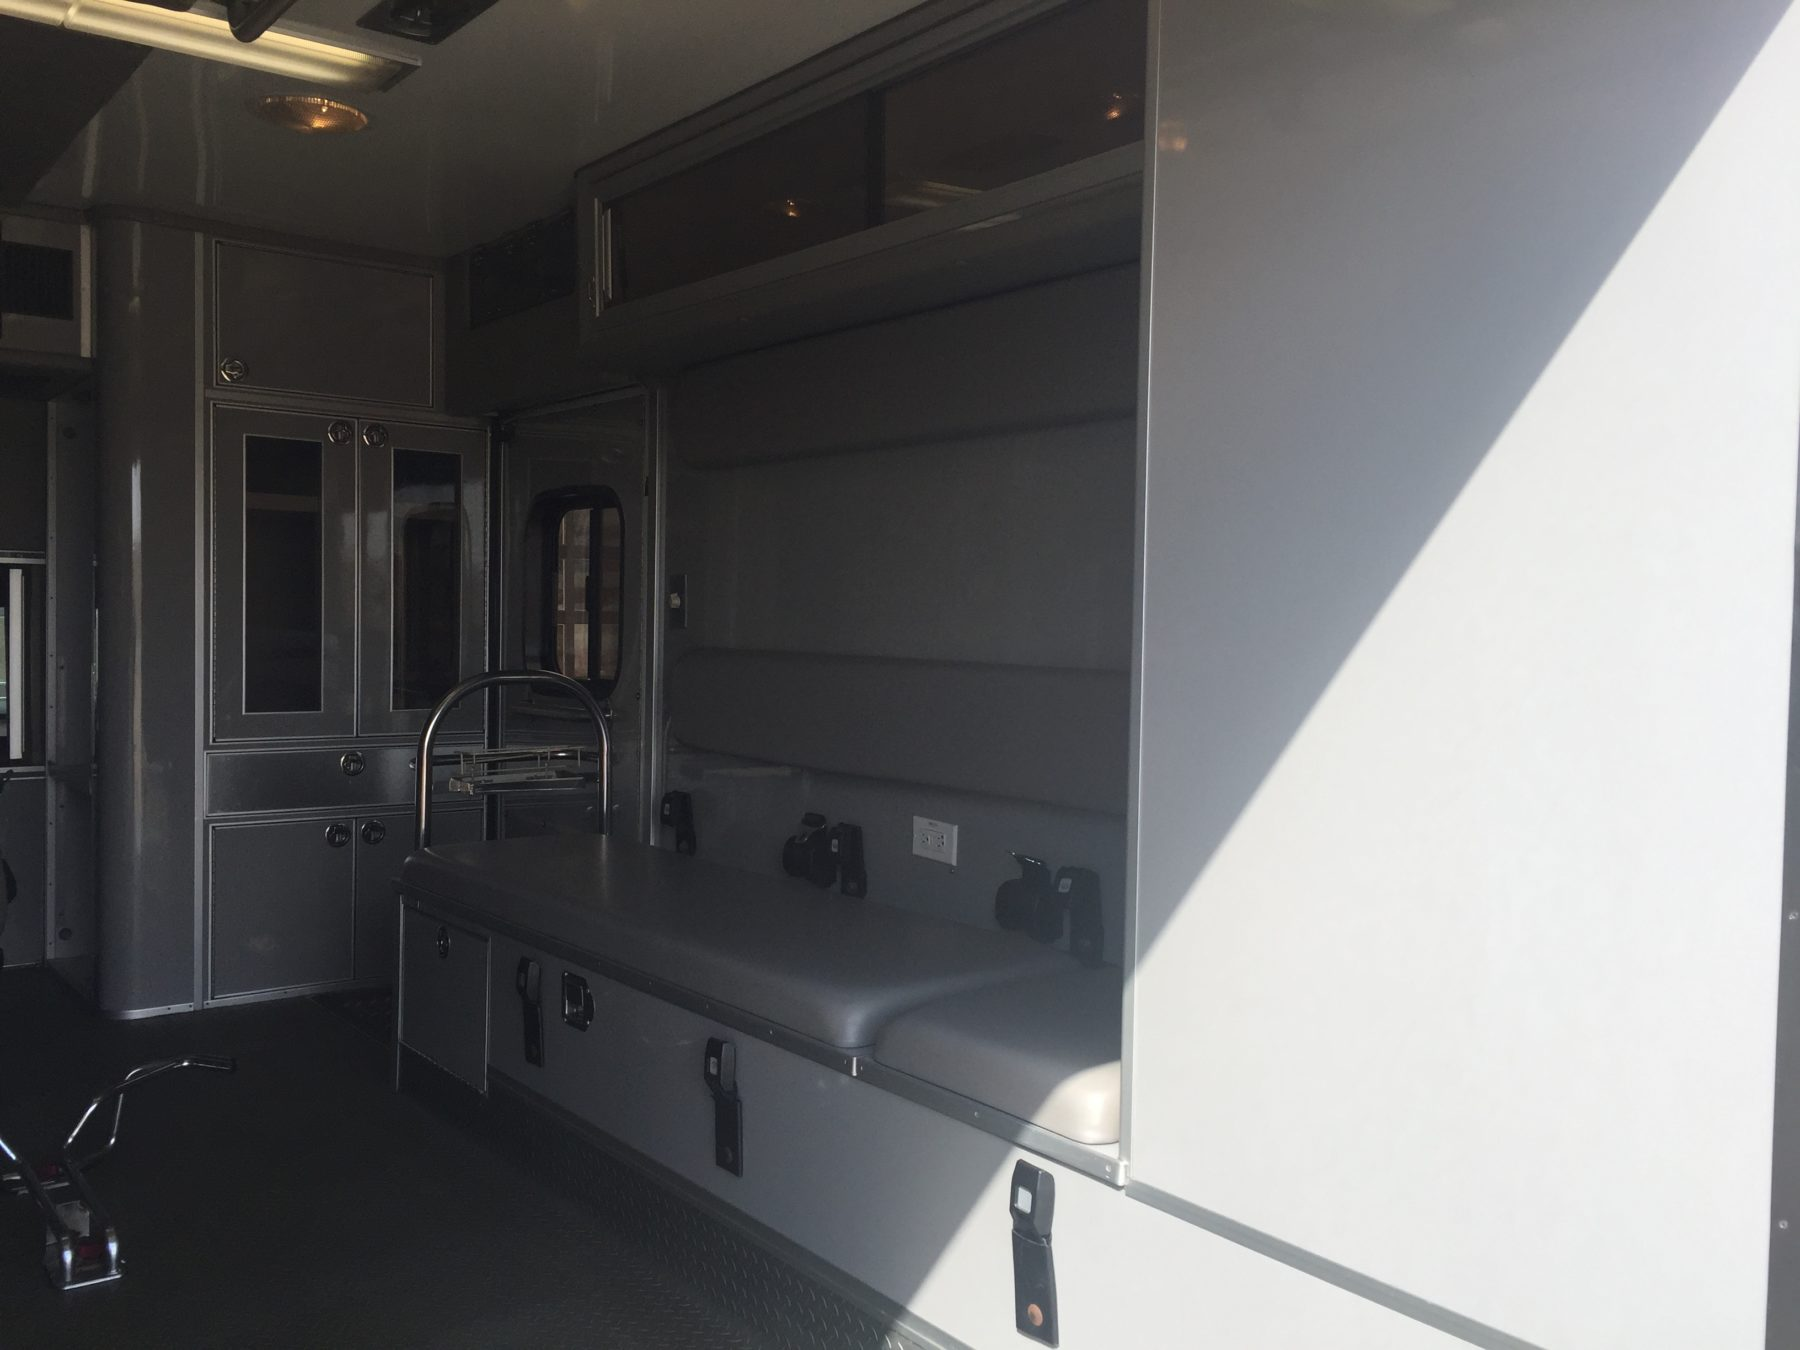 2008 Ford F450 Heavy Duty Ambulance For Sale – Picture 13